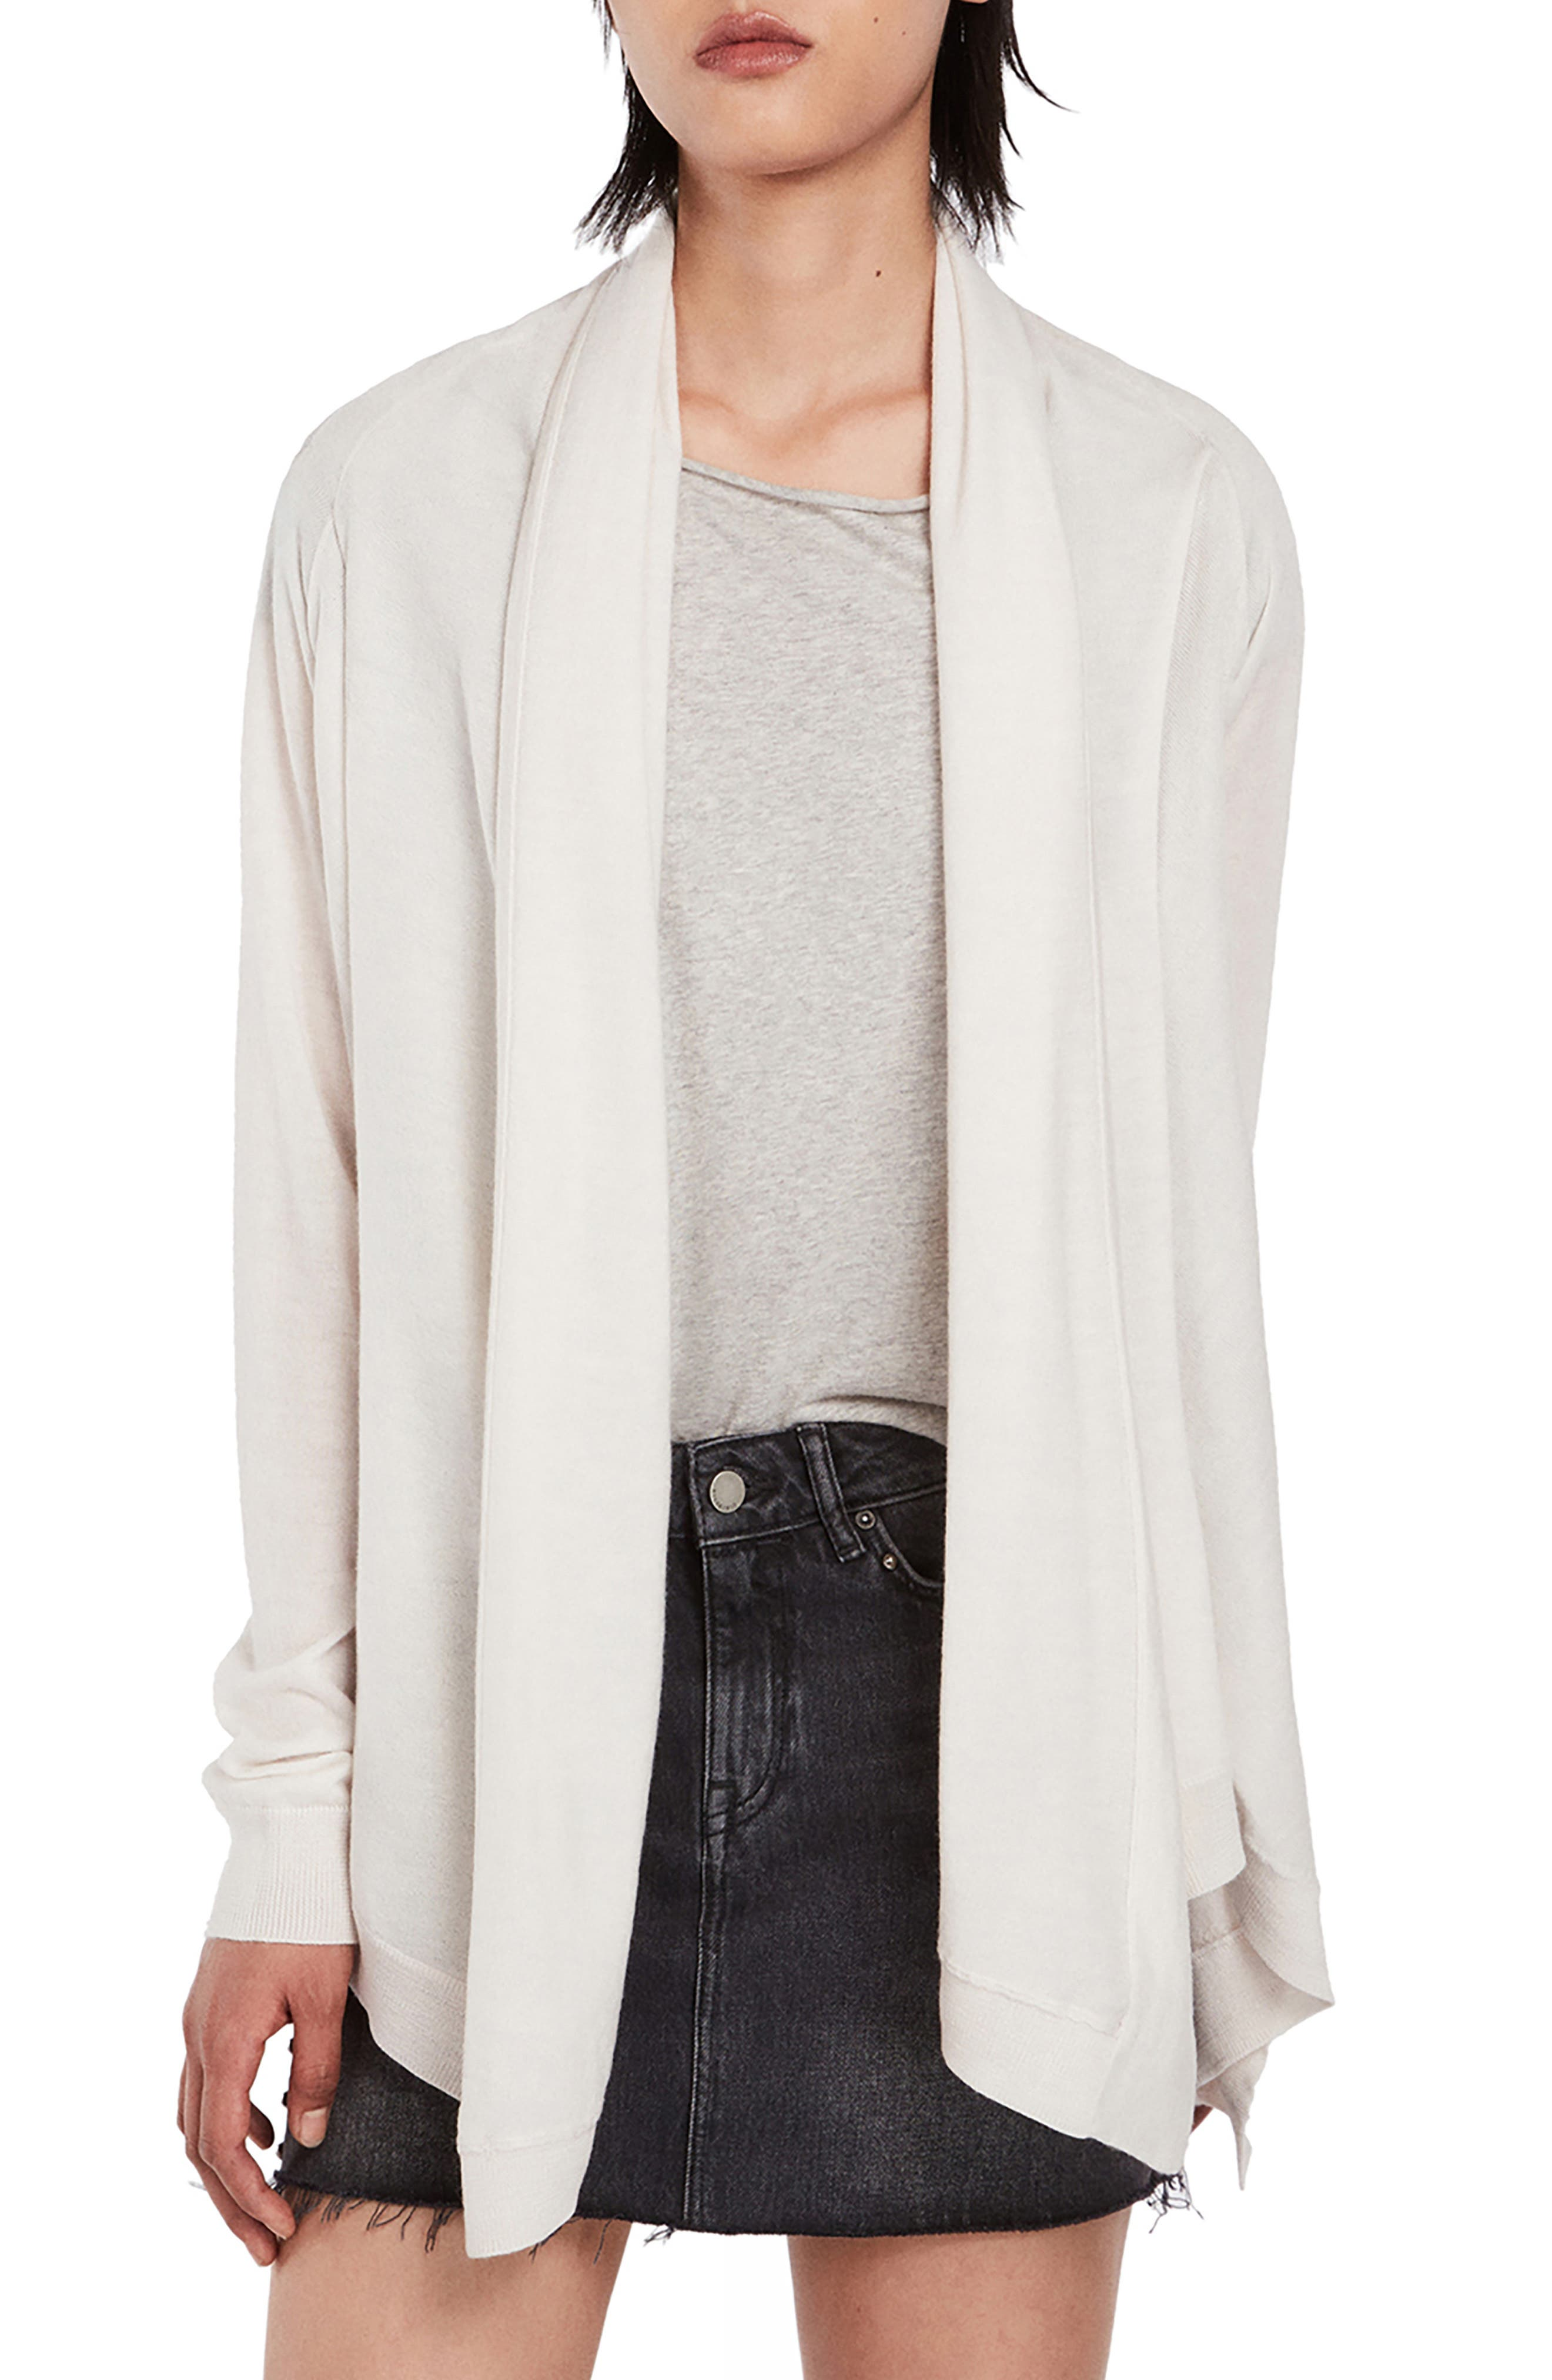 ALLSAINTS Ires Waterfall Cardigan in Chalk White